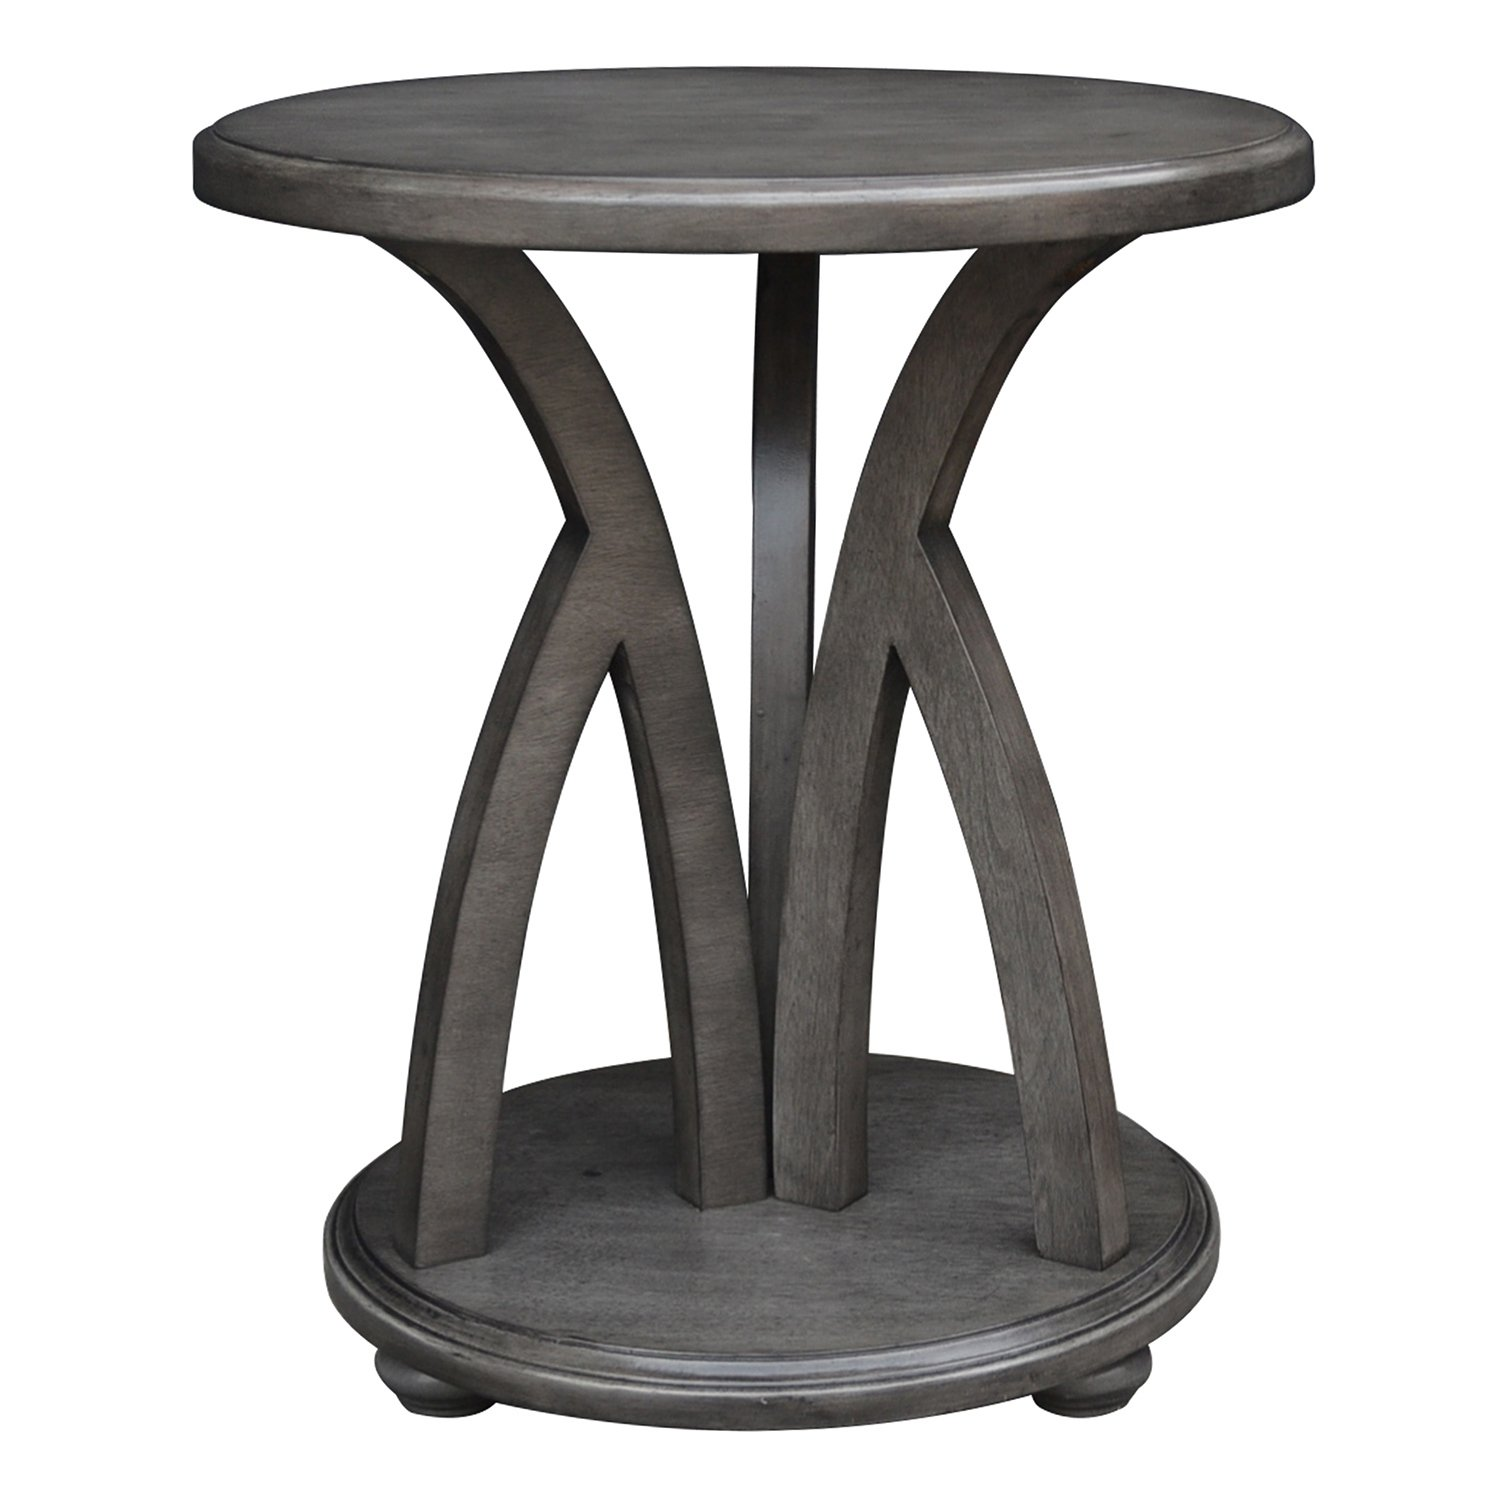 brayden grey accent table free shipping today janika faux marble bedside target corner display cabinet sofa legs galaxy note pedestal tall hallway side mirrored pier one dining